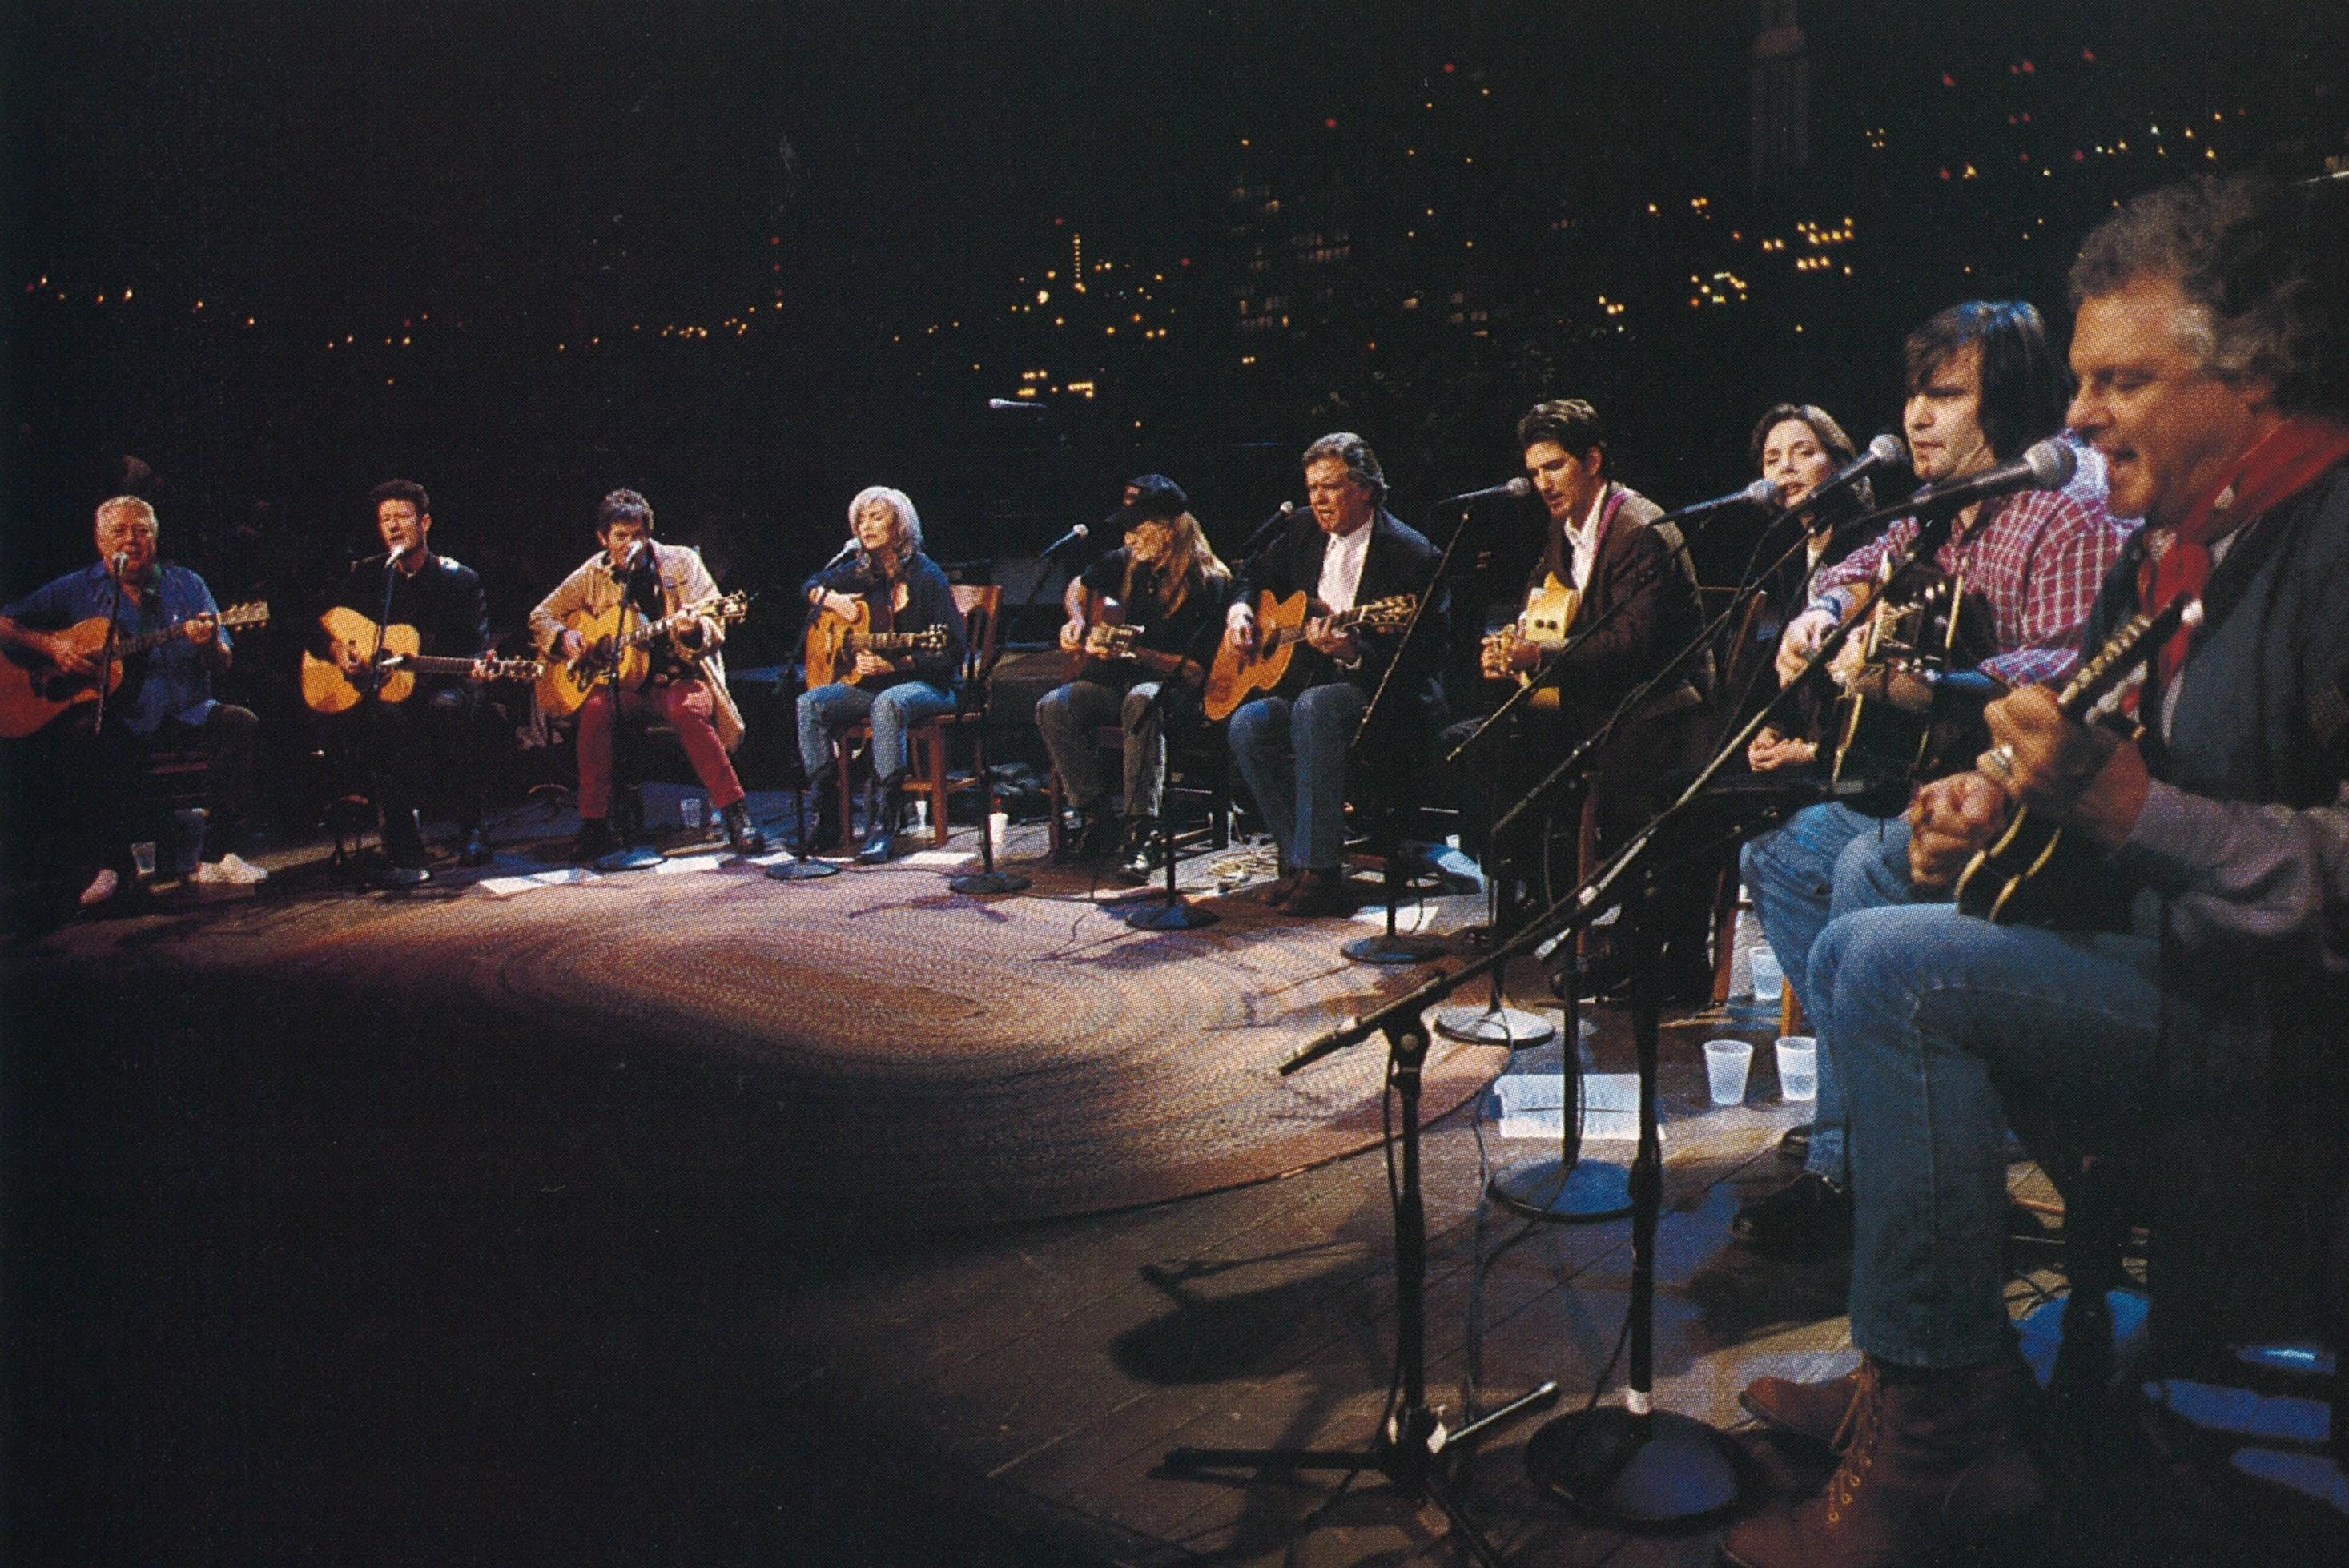 Talk of the Townes: At the Austin City Limits taping, his life and work were celebrated by (from left) Jack Clement, Lyle Lovett, Rodney Crowell, Emmylou Harris, Willie Nelson, Guy Clark, John Townes Van Zandt, Nanci Griffith, Steve Earle, and Peter Rowan.